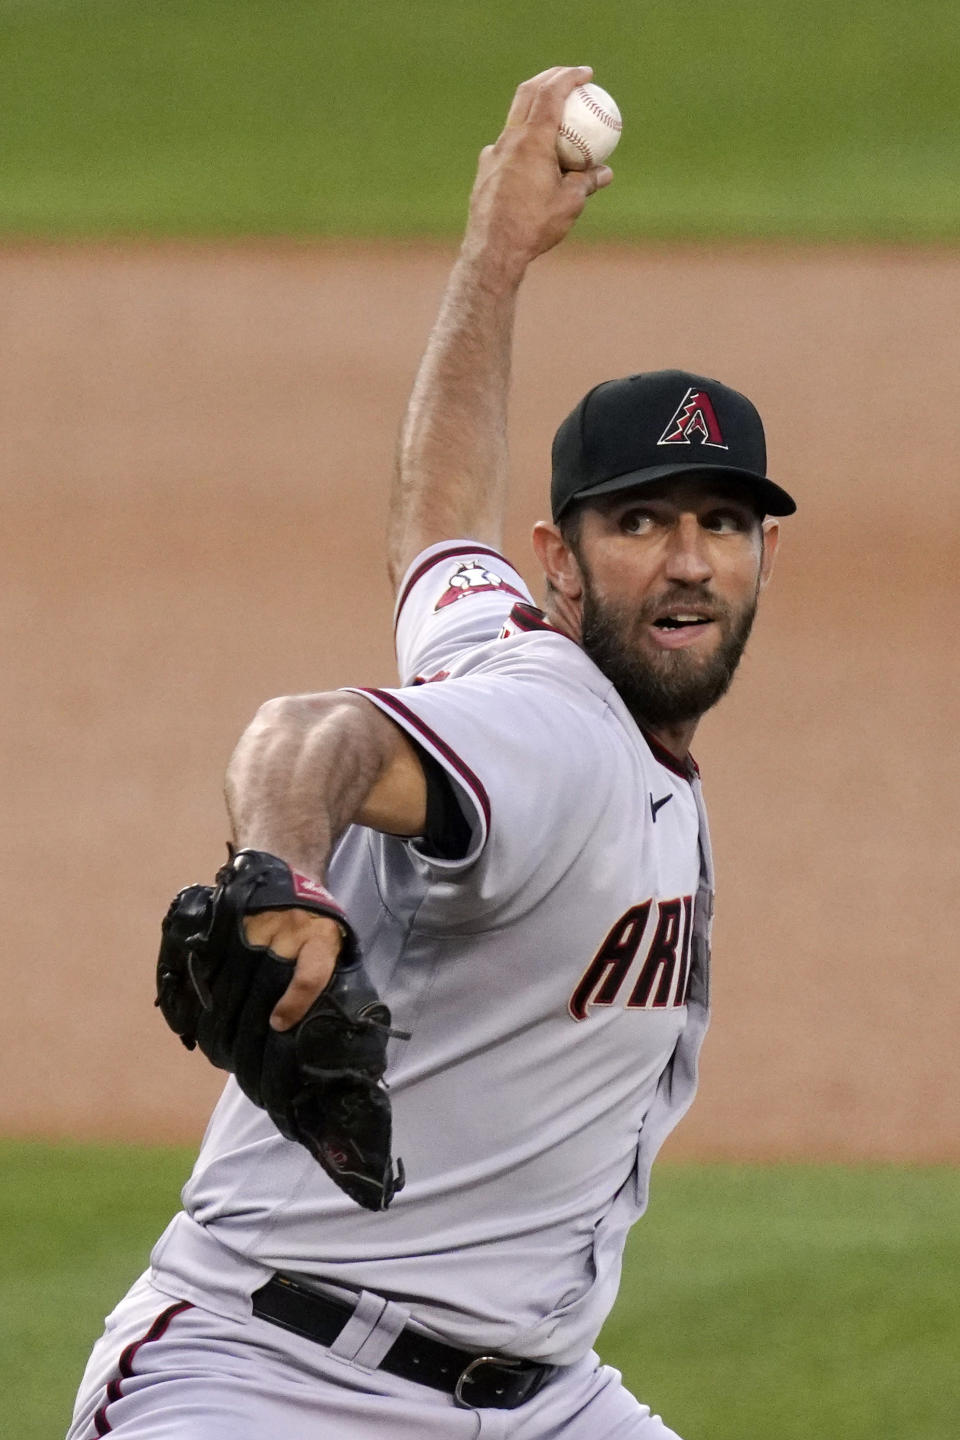 Arizona Diamondbacks starting pitcher Madison Bumgarner throws to the plate during the first inning of a baseball game against the Los Angeles Dodgers Monday, May 17, 2021, in Los Angeles. (AP Photo/Mark J. Terrill)